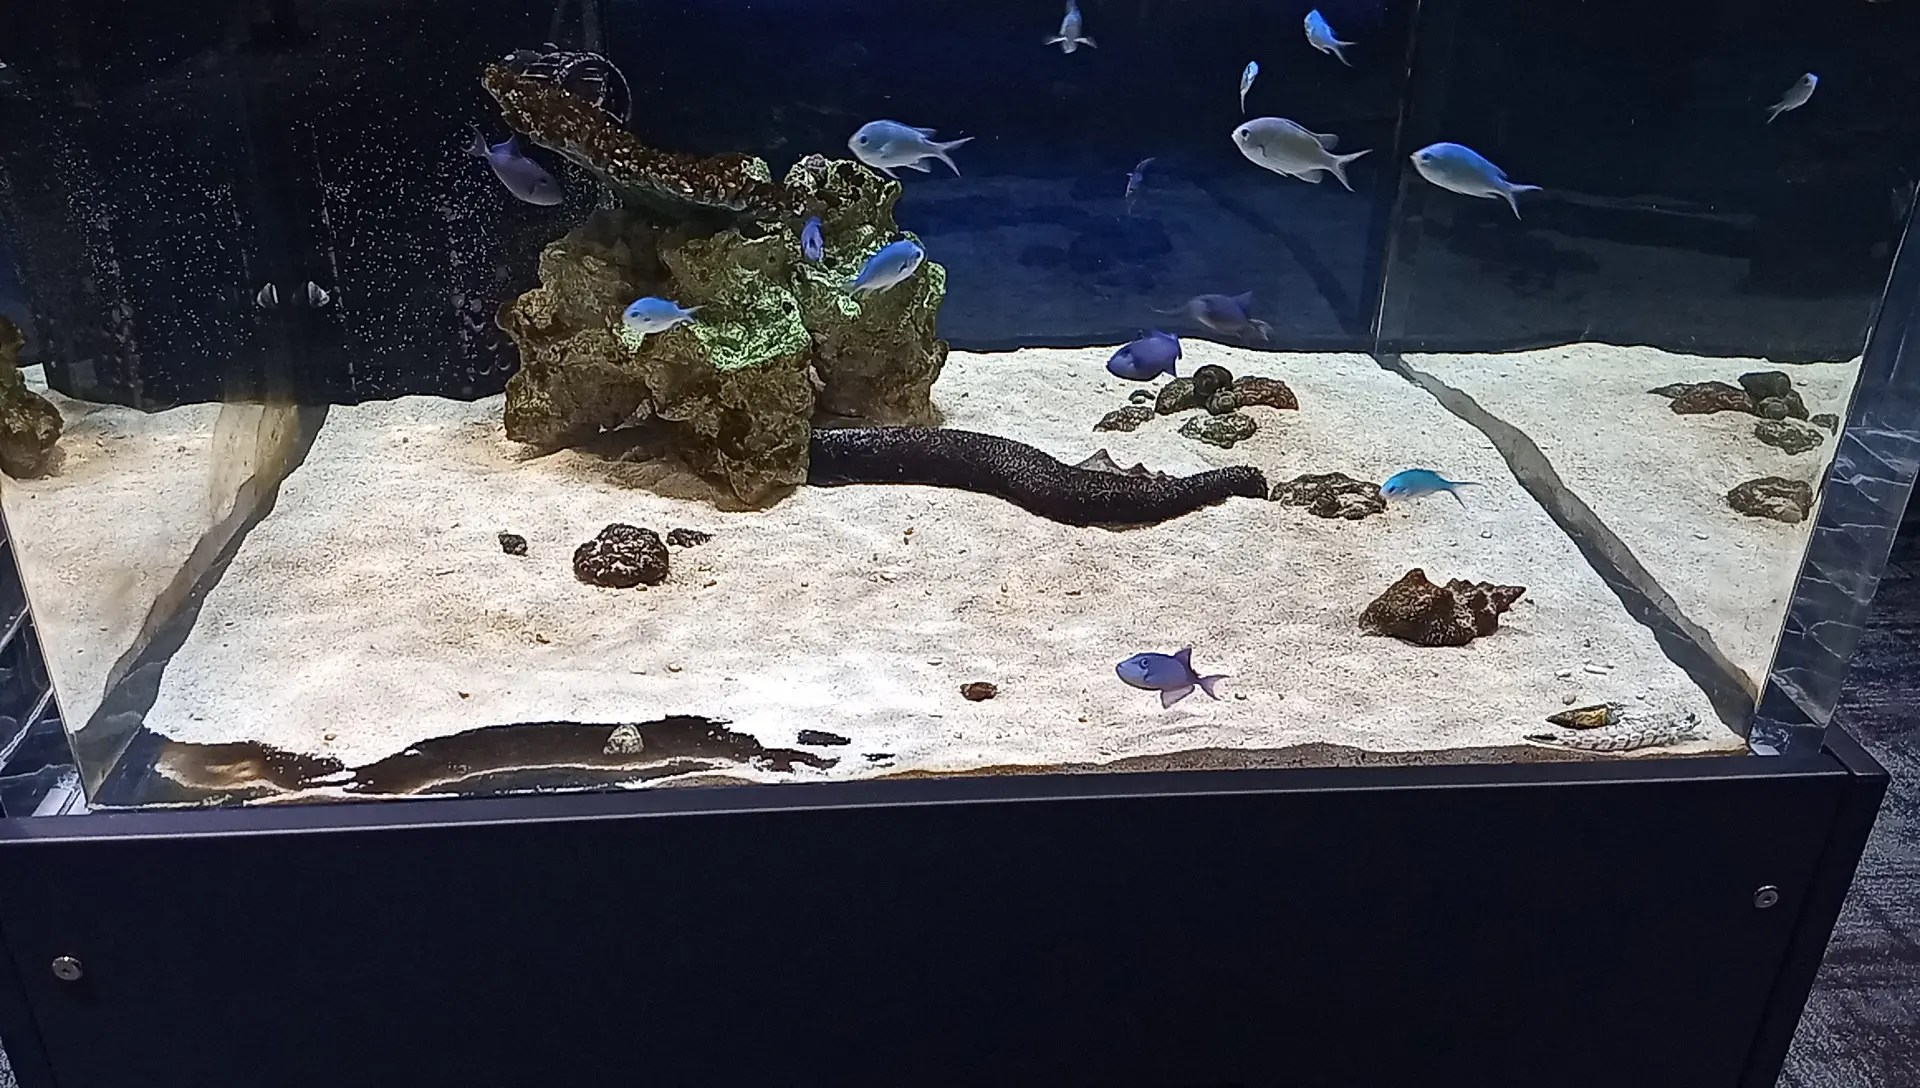 Seawater tank 5 on the 1st floor of DMM Kariyushi Aquarium